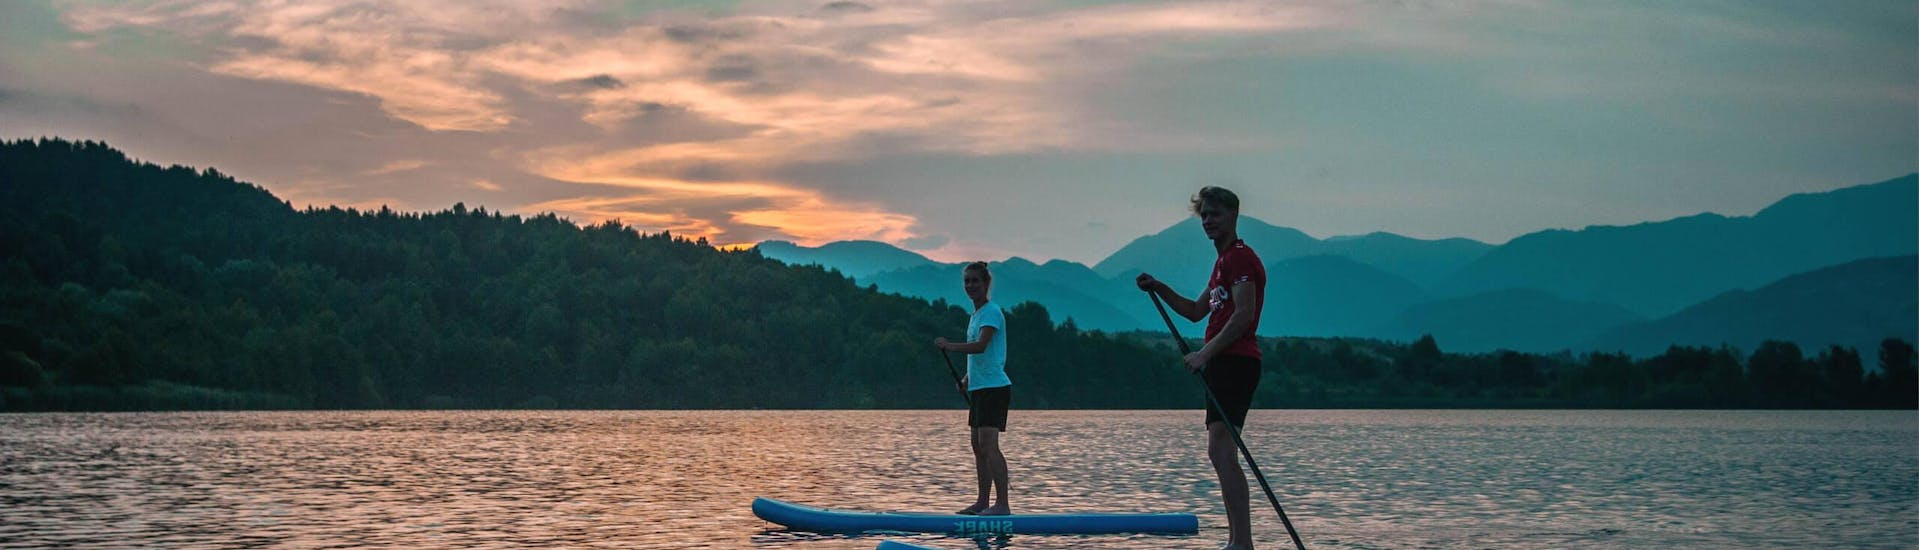 Watching magical sunset during Stand Up Paddle Sunset Tour - Lake Velenje organized by Funpark Menina